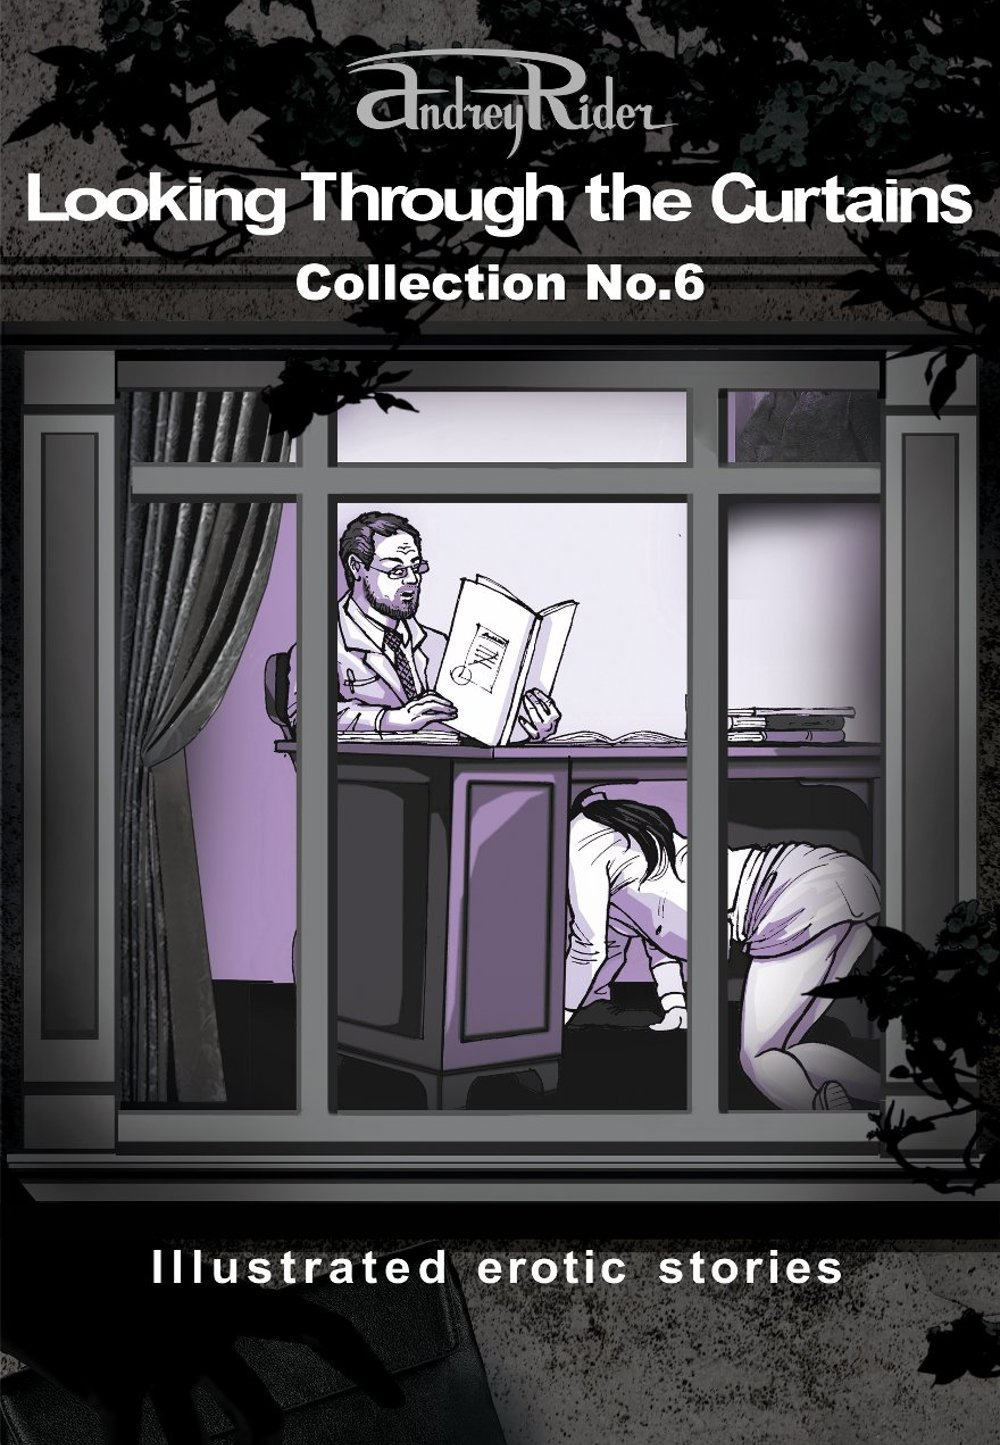 Collection of Erotic Stories No.6